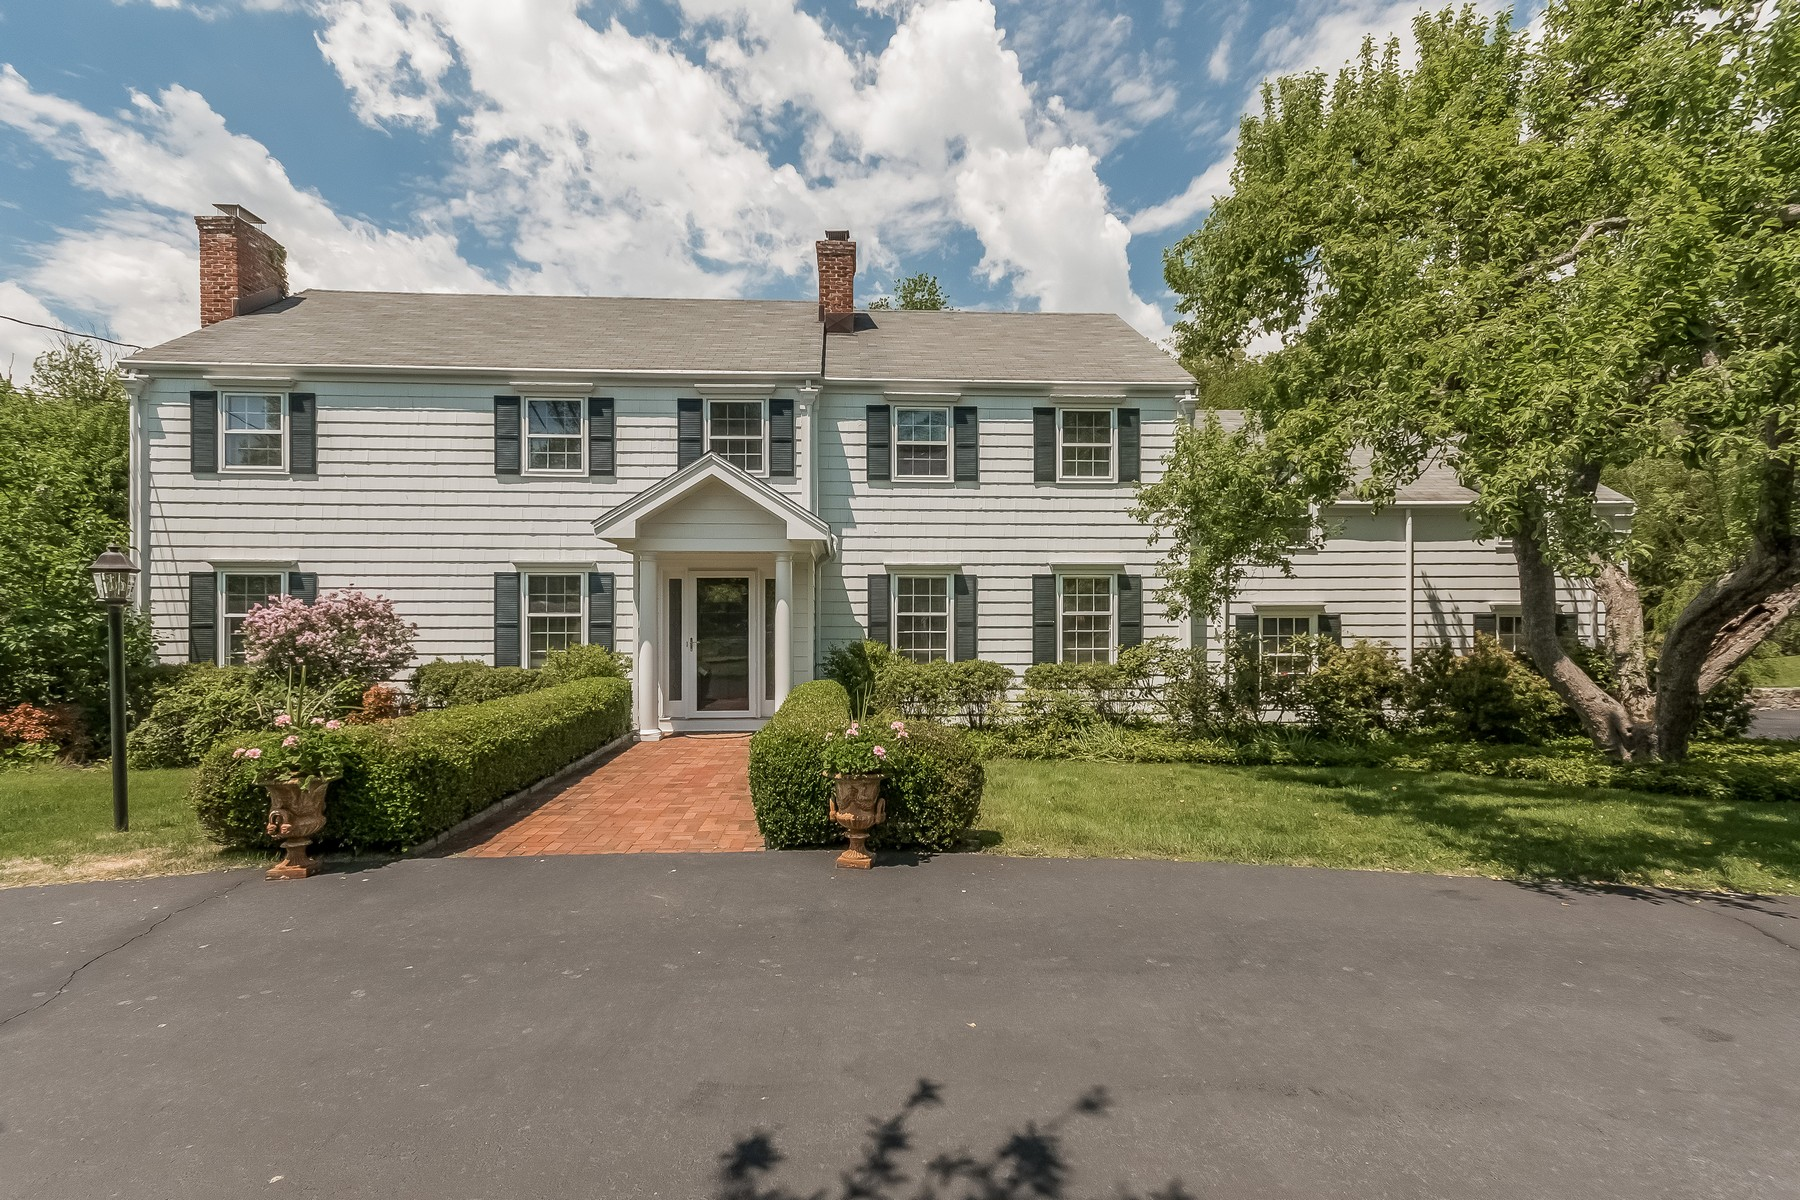 Single Family Home for Sale at ELEGANT COUNTRY ESTATE 38 Fallow Field Road Fairfield, Connecticut, 06824 United States